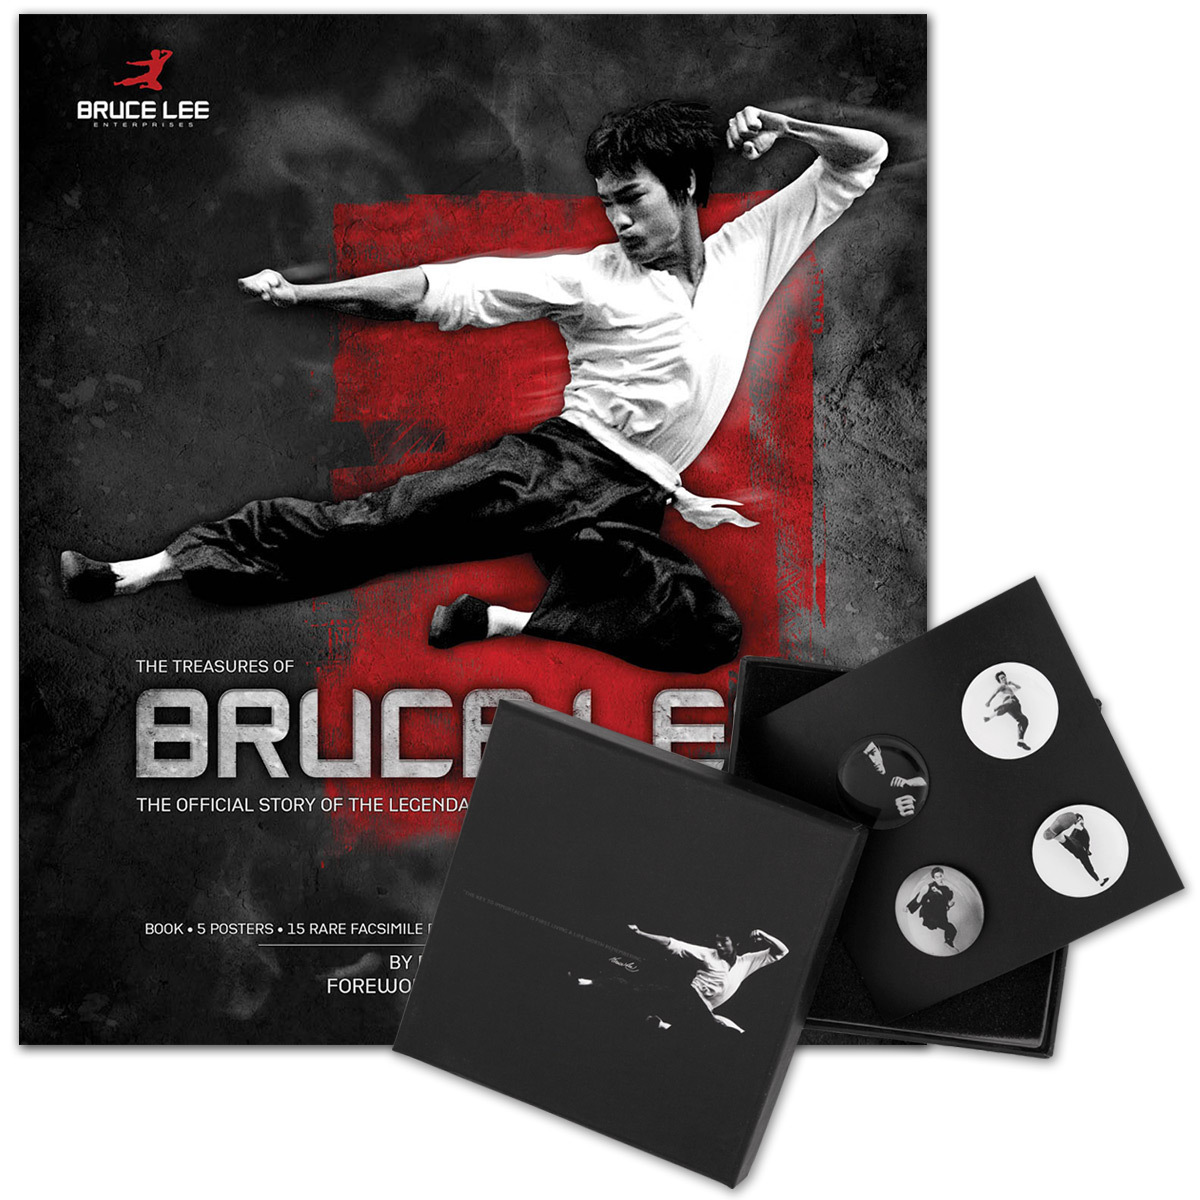 The Treasures of Bruce Lee Book/Bruce Lee LTD Edition Black & White Lapel Pin Set Bundle